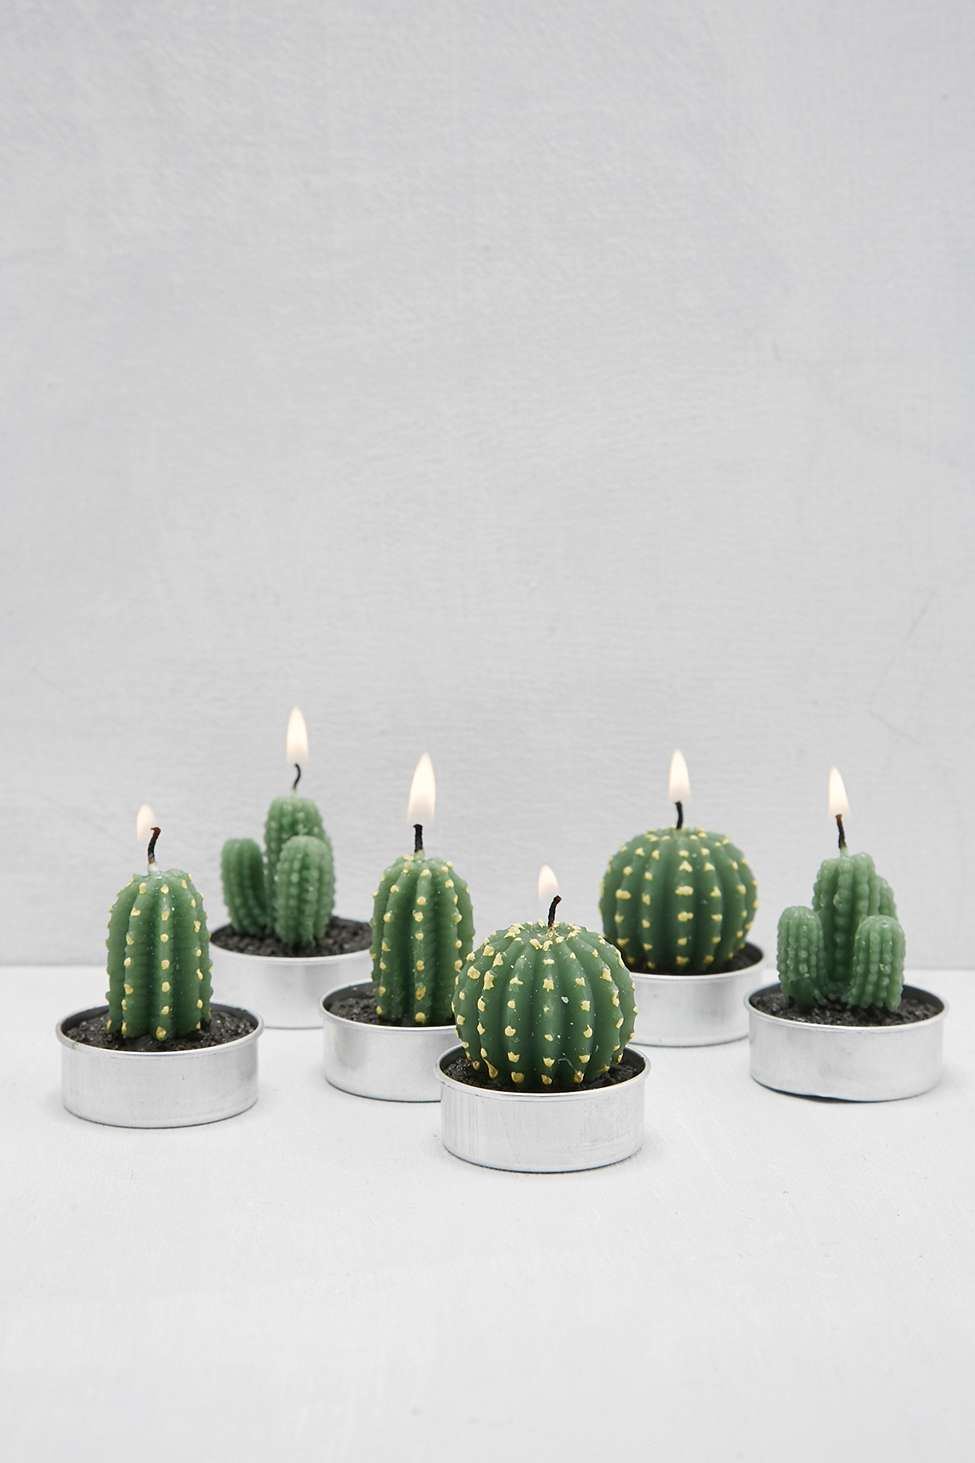 bougies chauffe plat cactus d co pinterest cactus bougies et plat. Black Bedroom Furniture Sets. Home Design Ideas